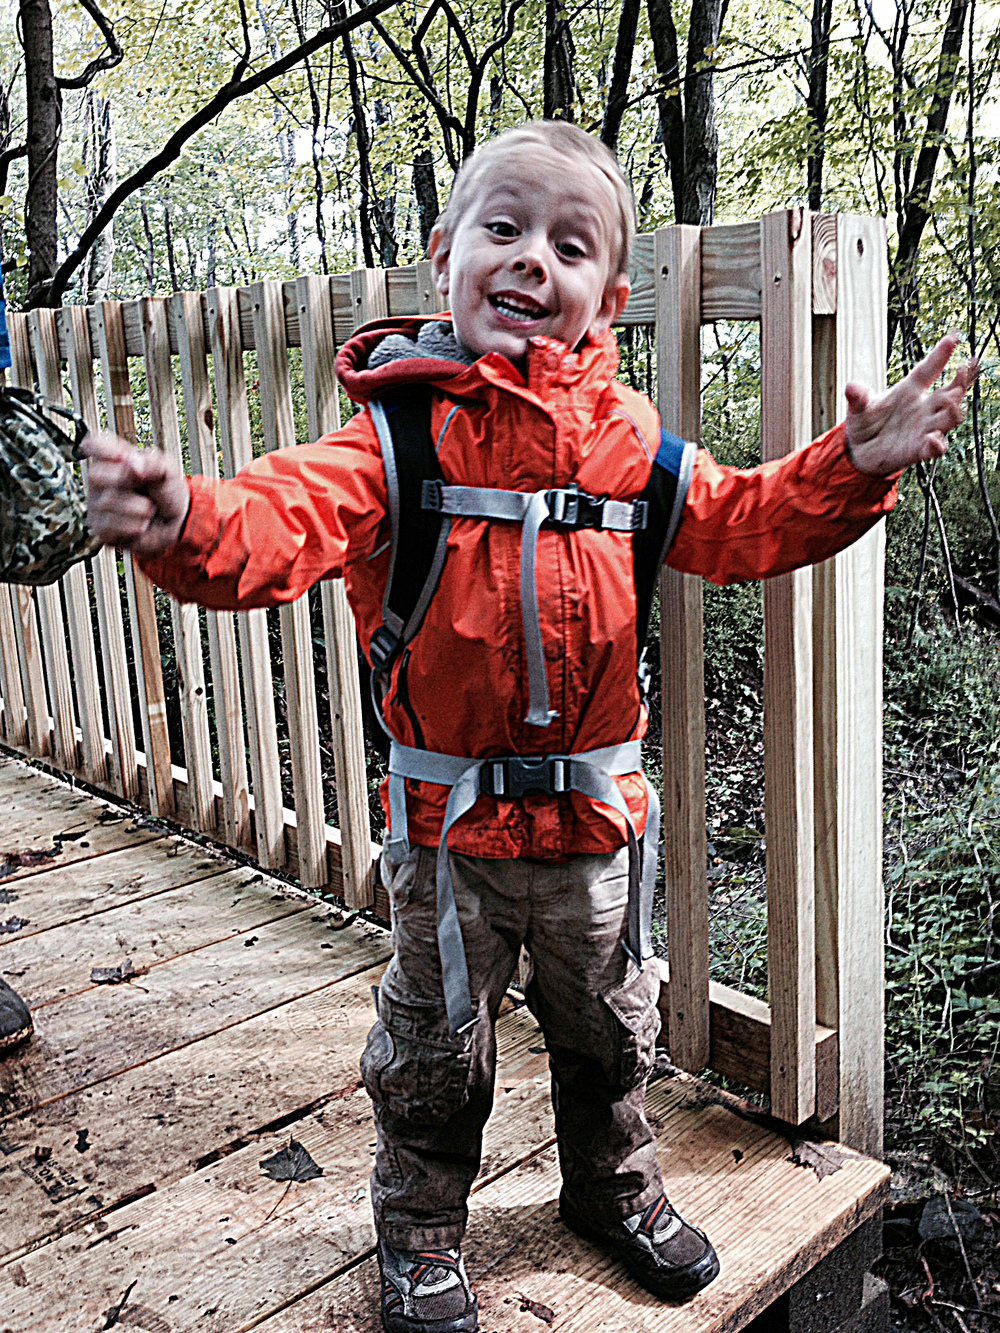 Without rain pants and rain boots, our littlest student came home covered in mud!